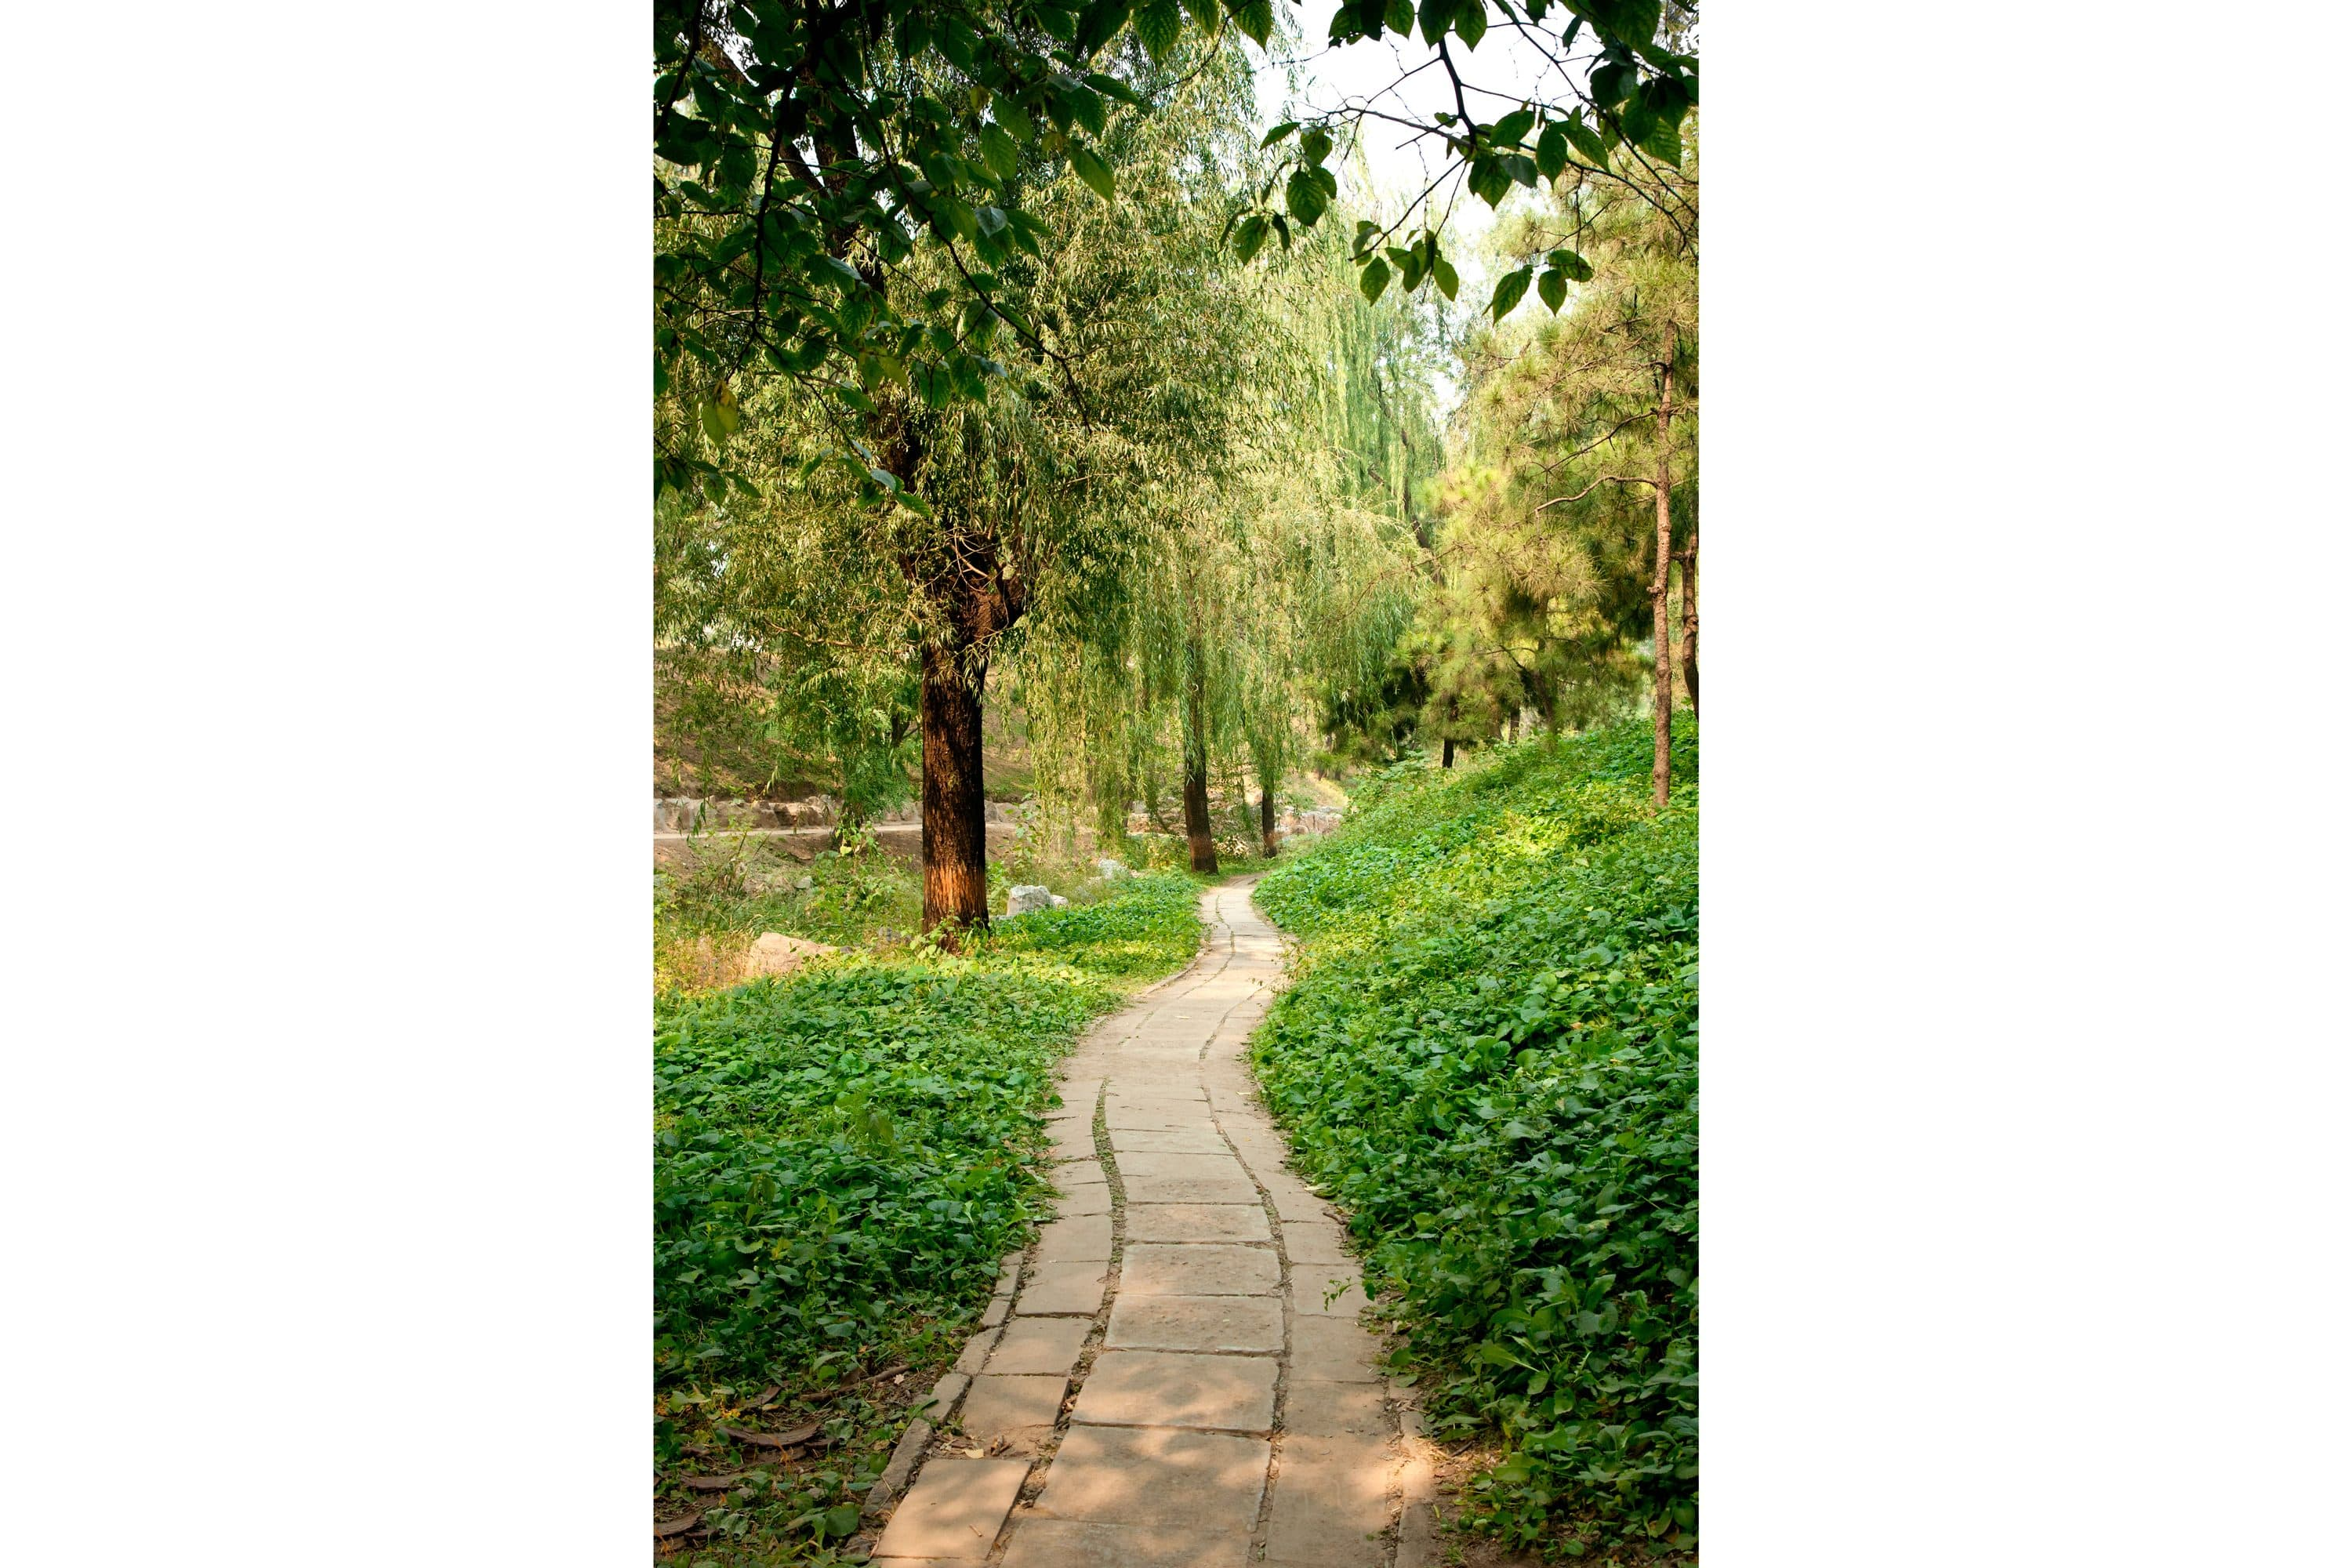 Garden pathway at Old Summer Palace, Beijing